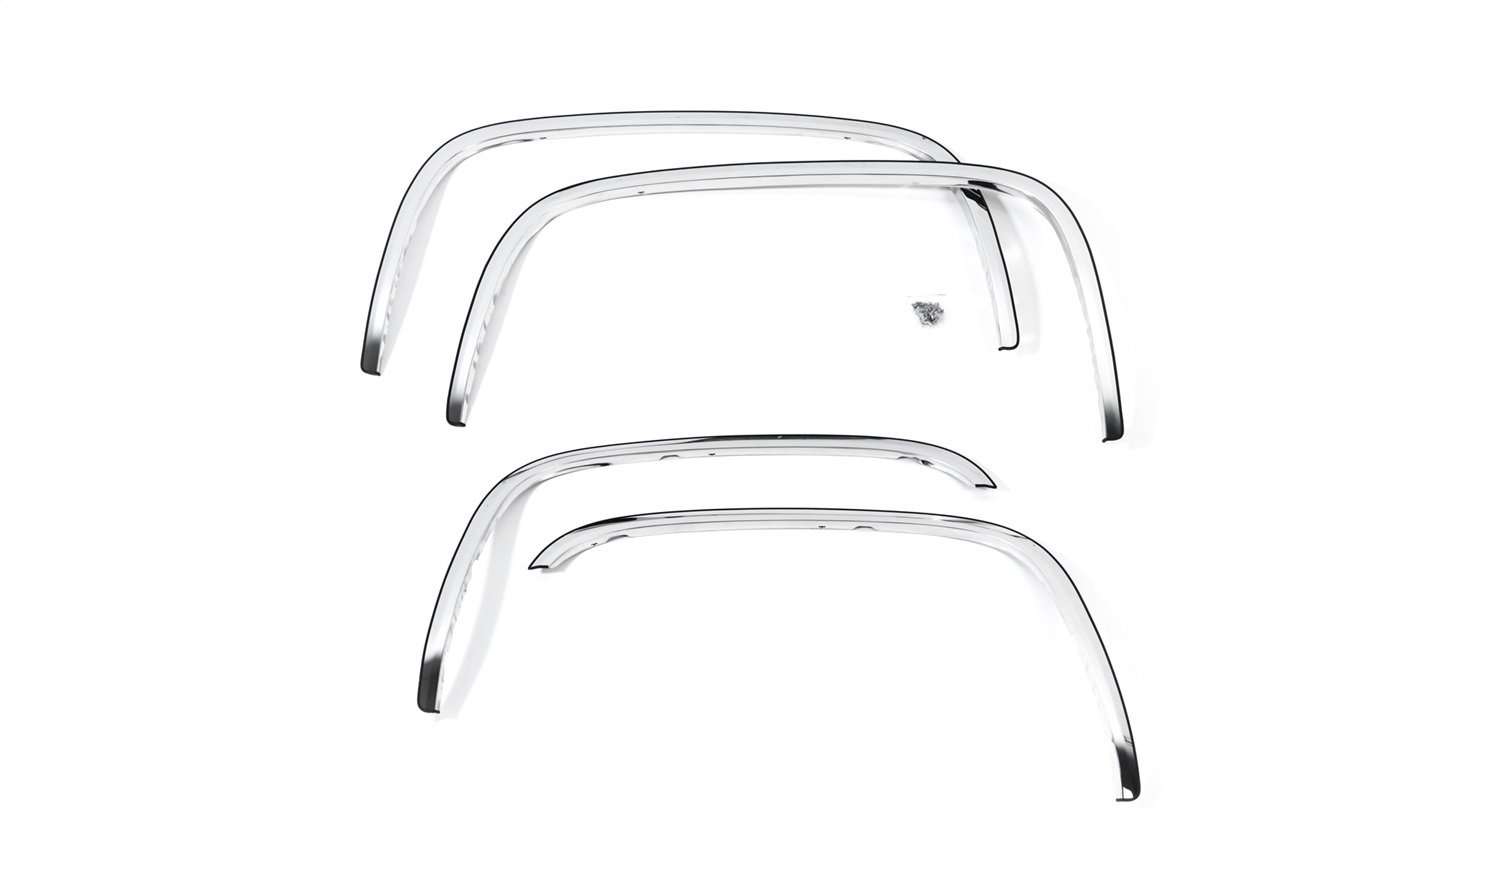 Putco 97218 Stainless Steel Full Fender Trim Kit for Ford Ranger